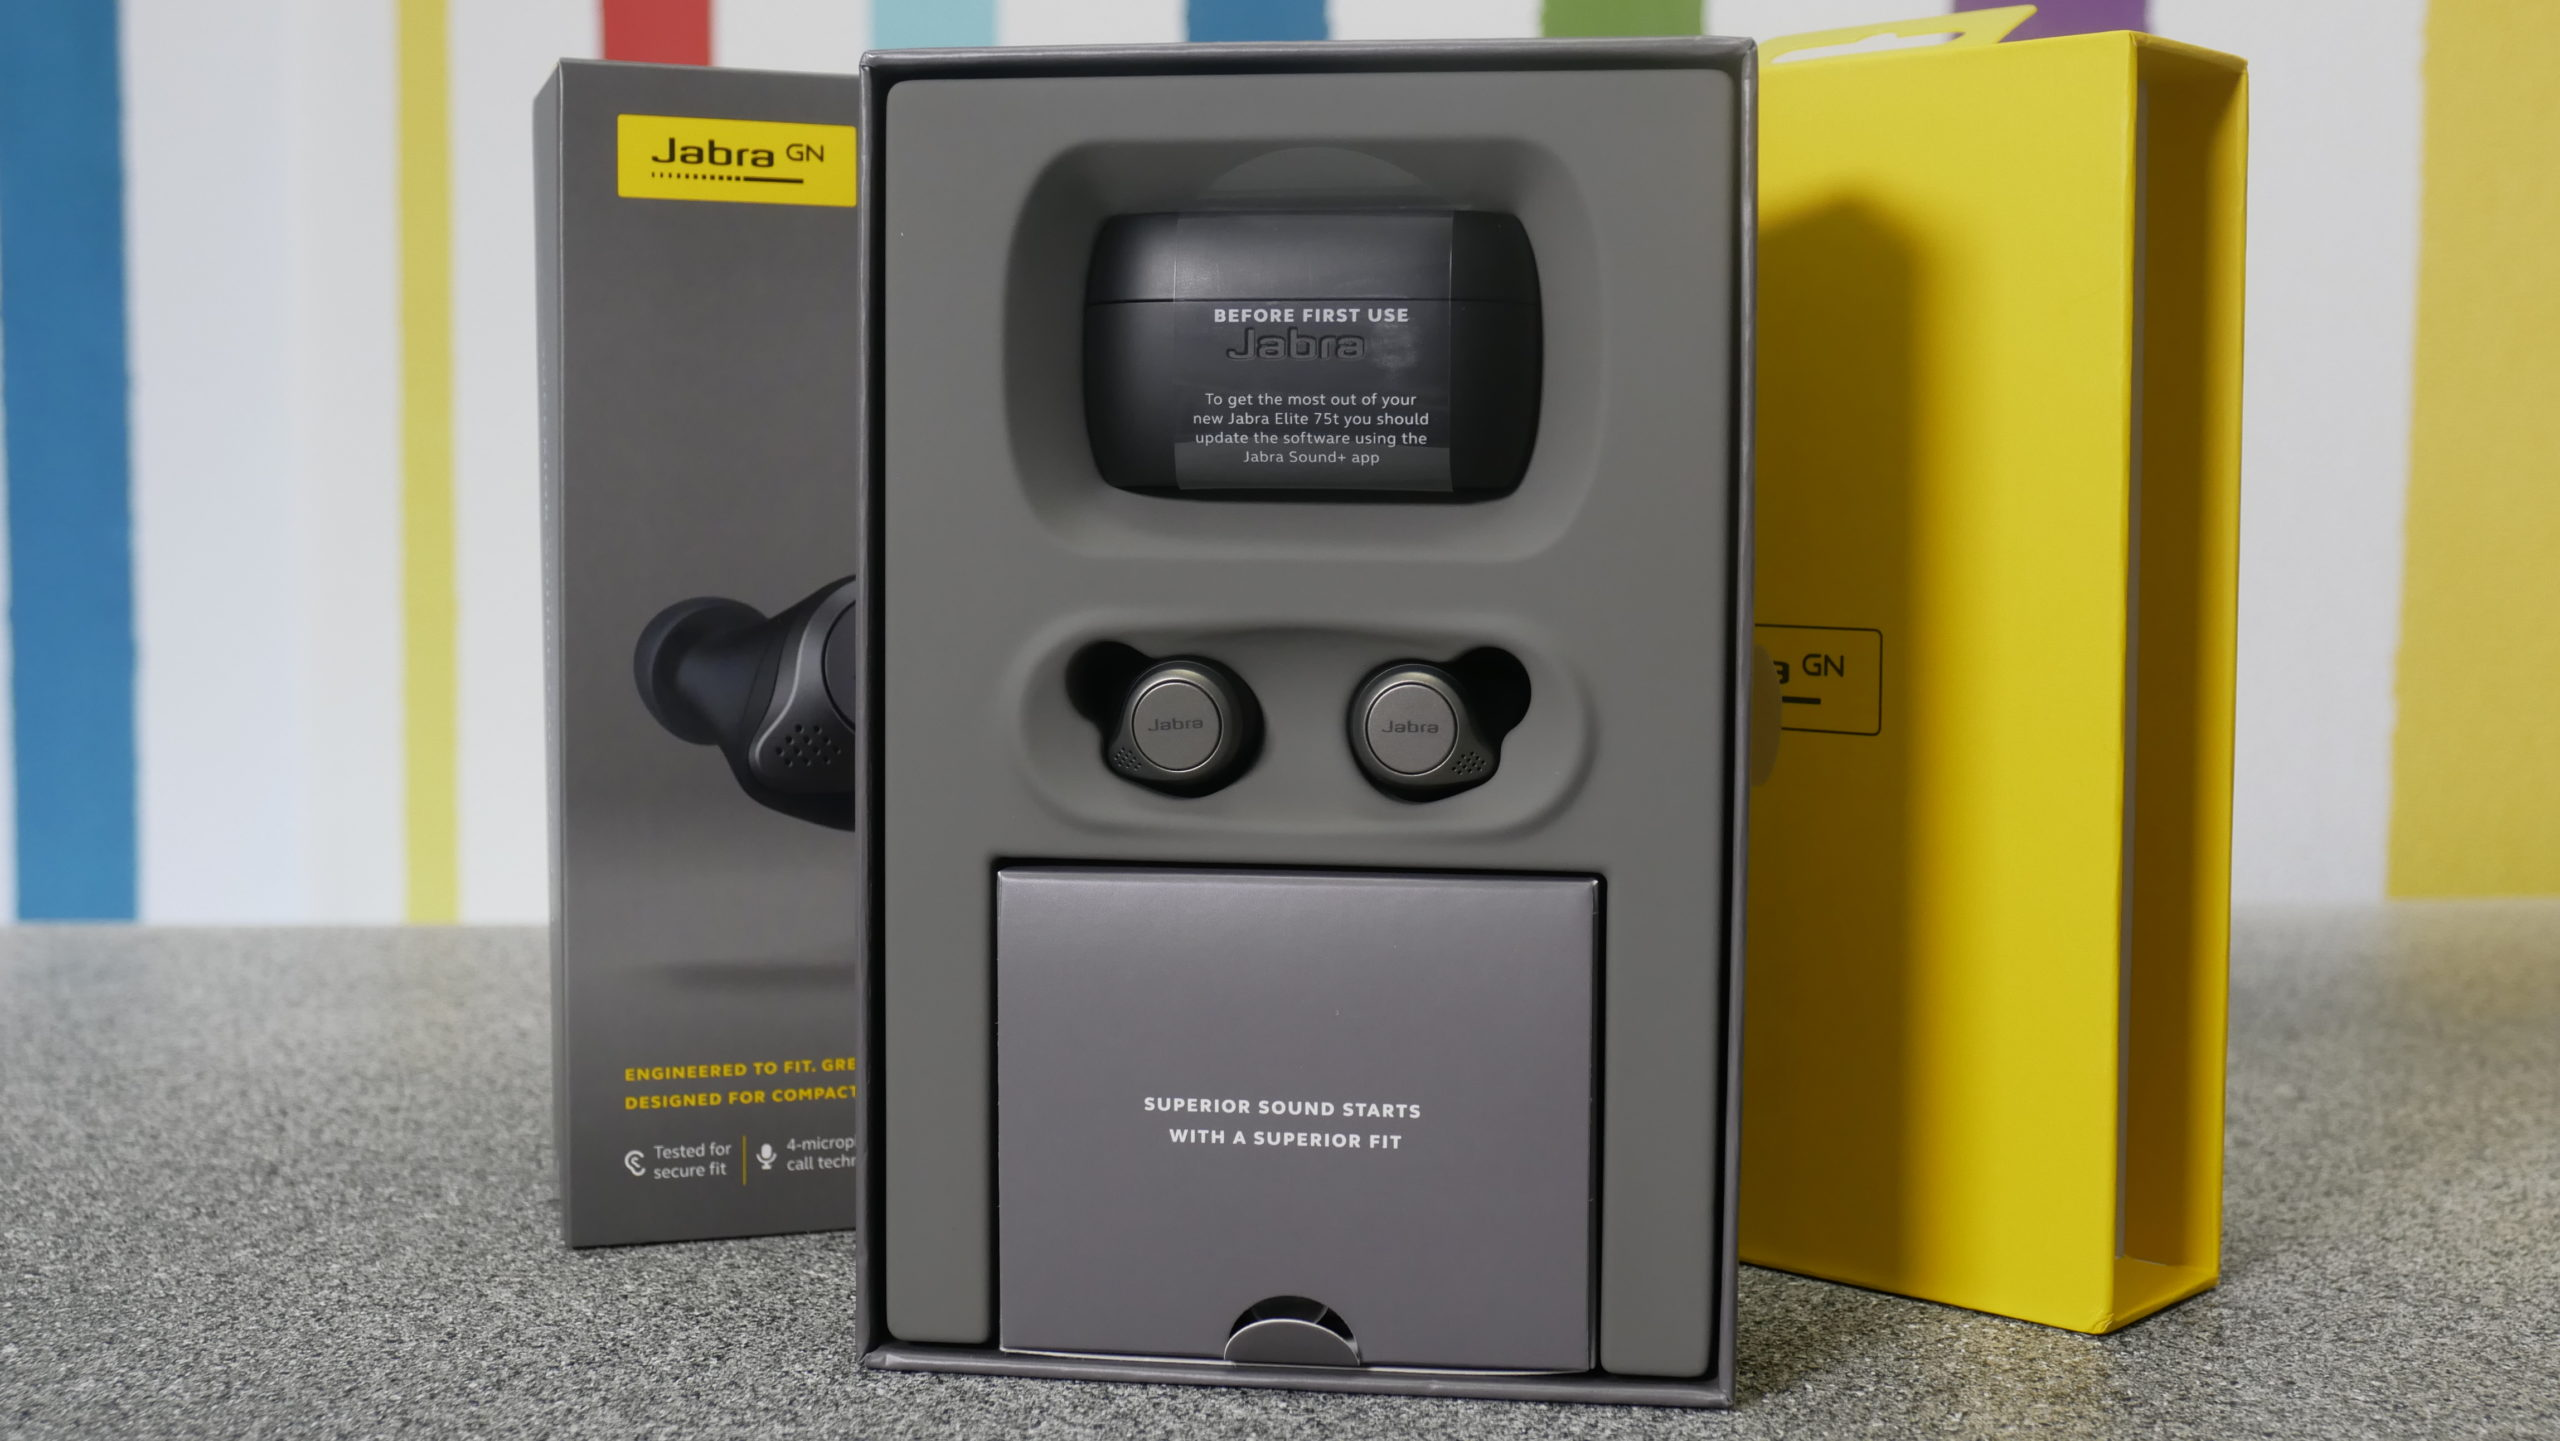 Jabra Elite 75t And Elite Active 75t Review True Wireless Headphones With Very Good Sound And Waterproof Igor Slab